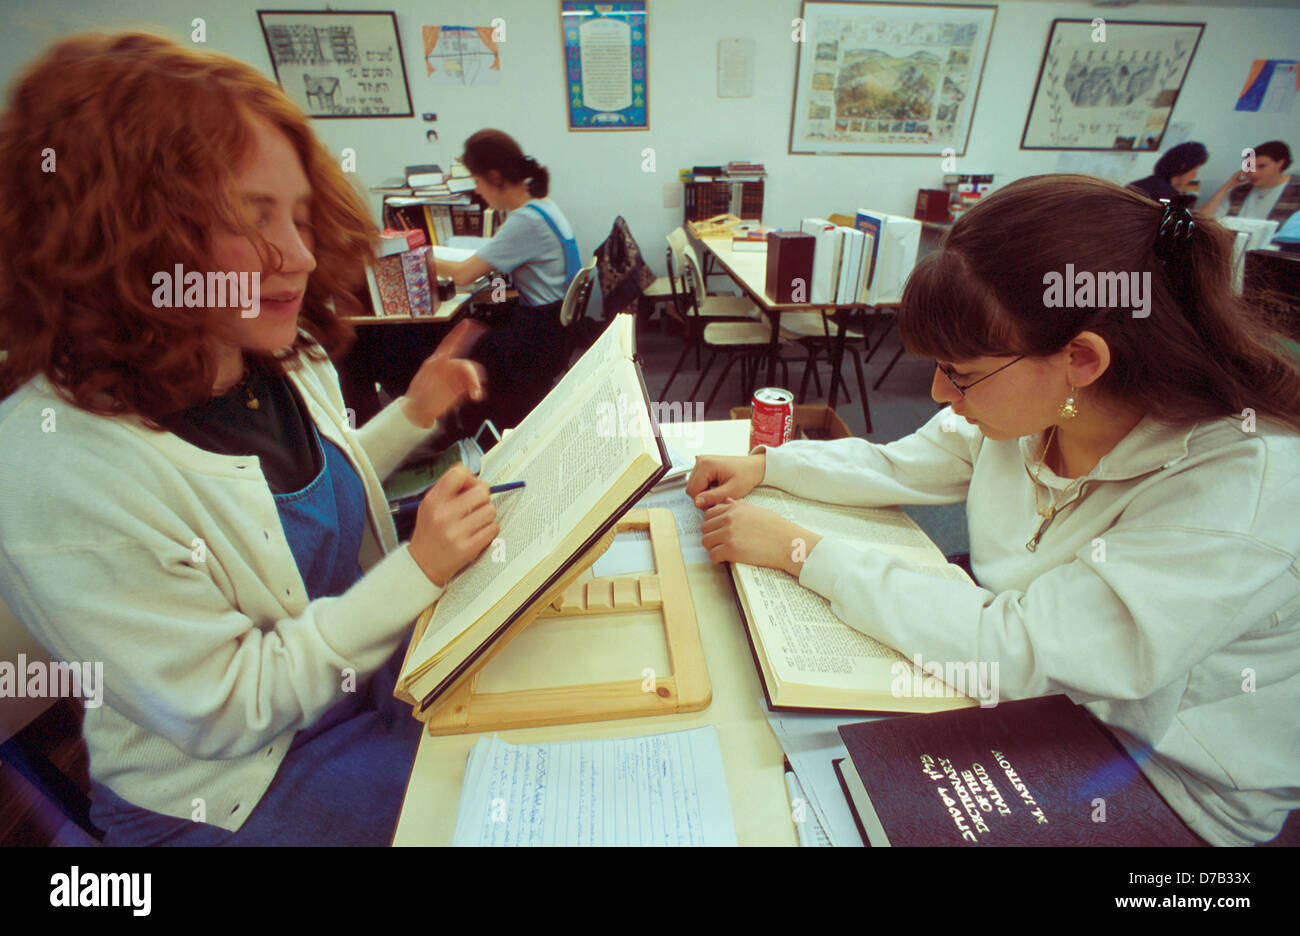 Girls During Talmud Lesson - Stock Image